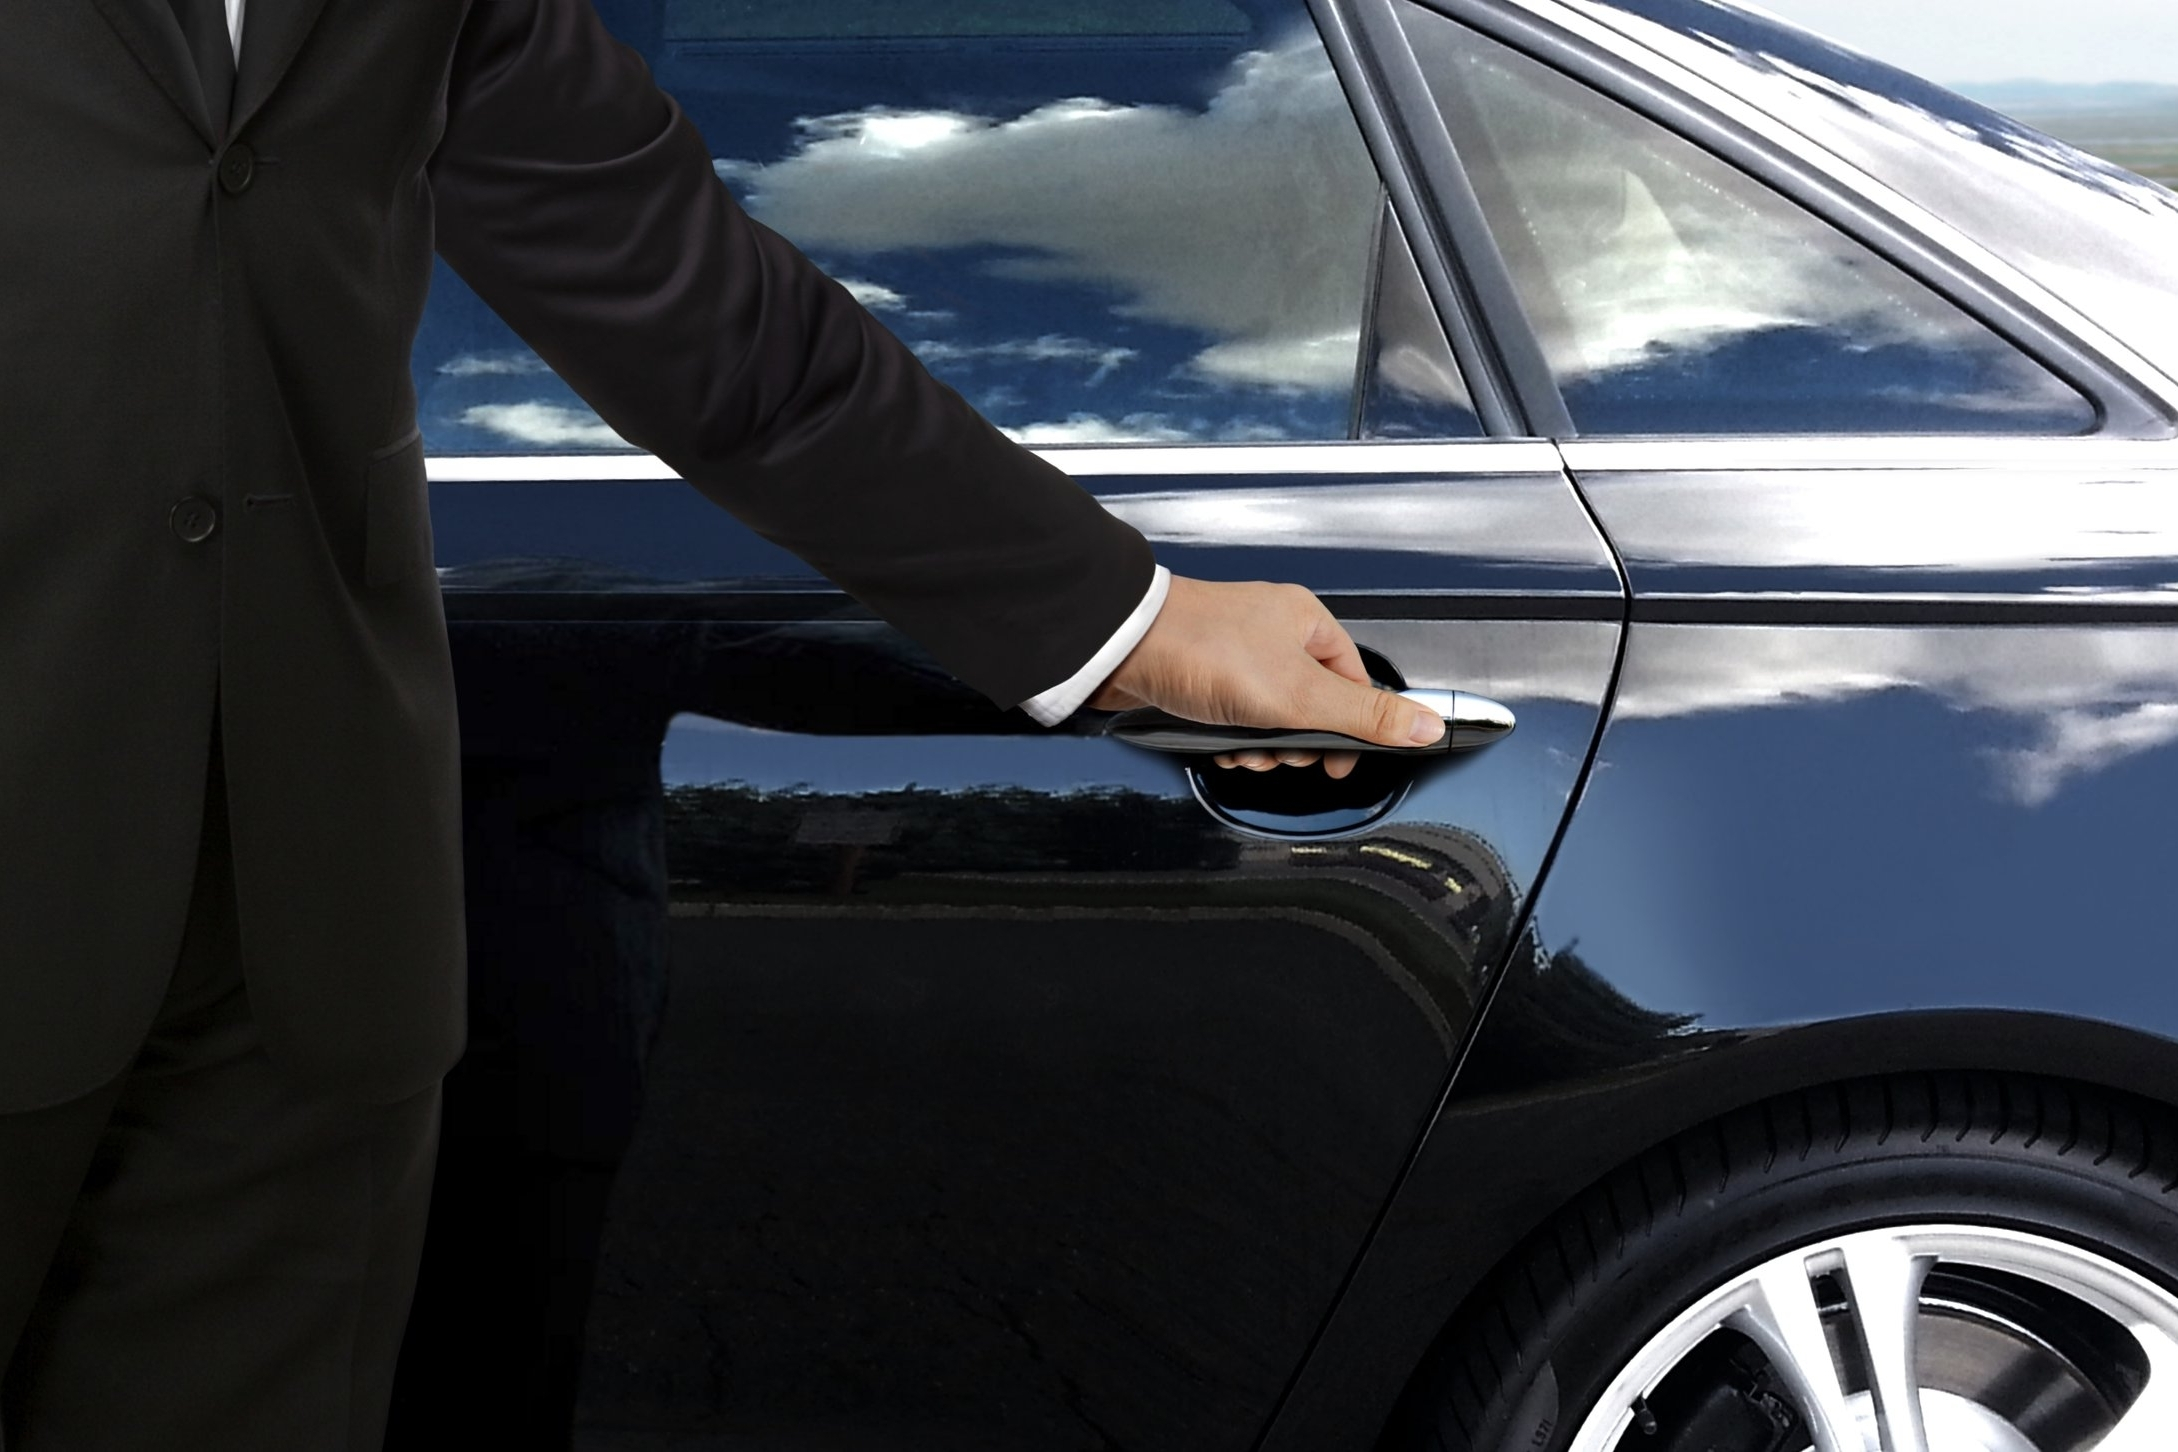 Concierge Services - Expert • Resourceful • AttunedAccommodating your every desire.